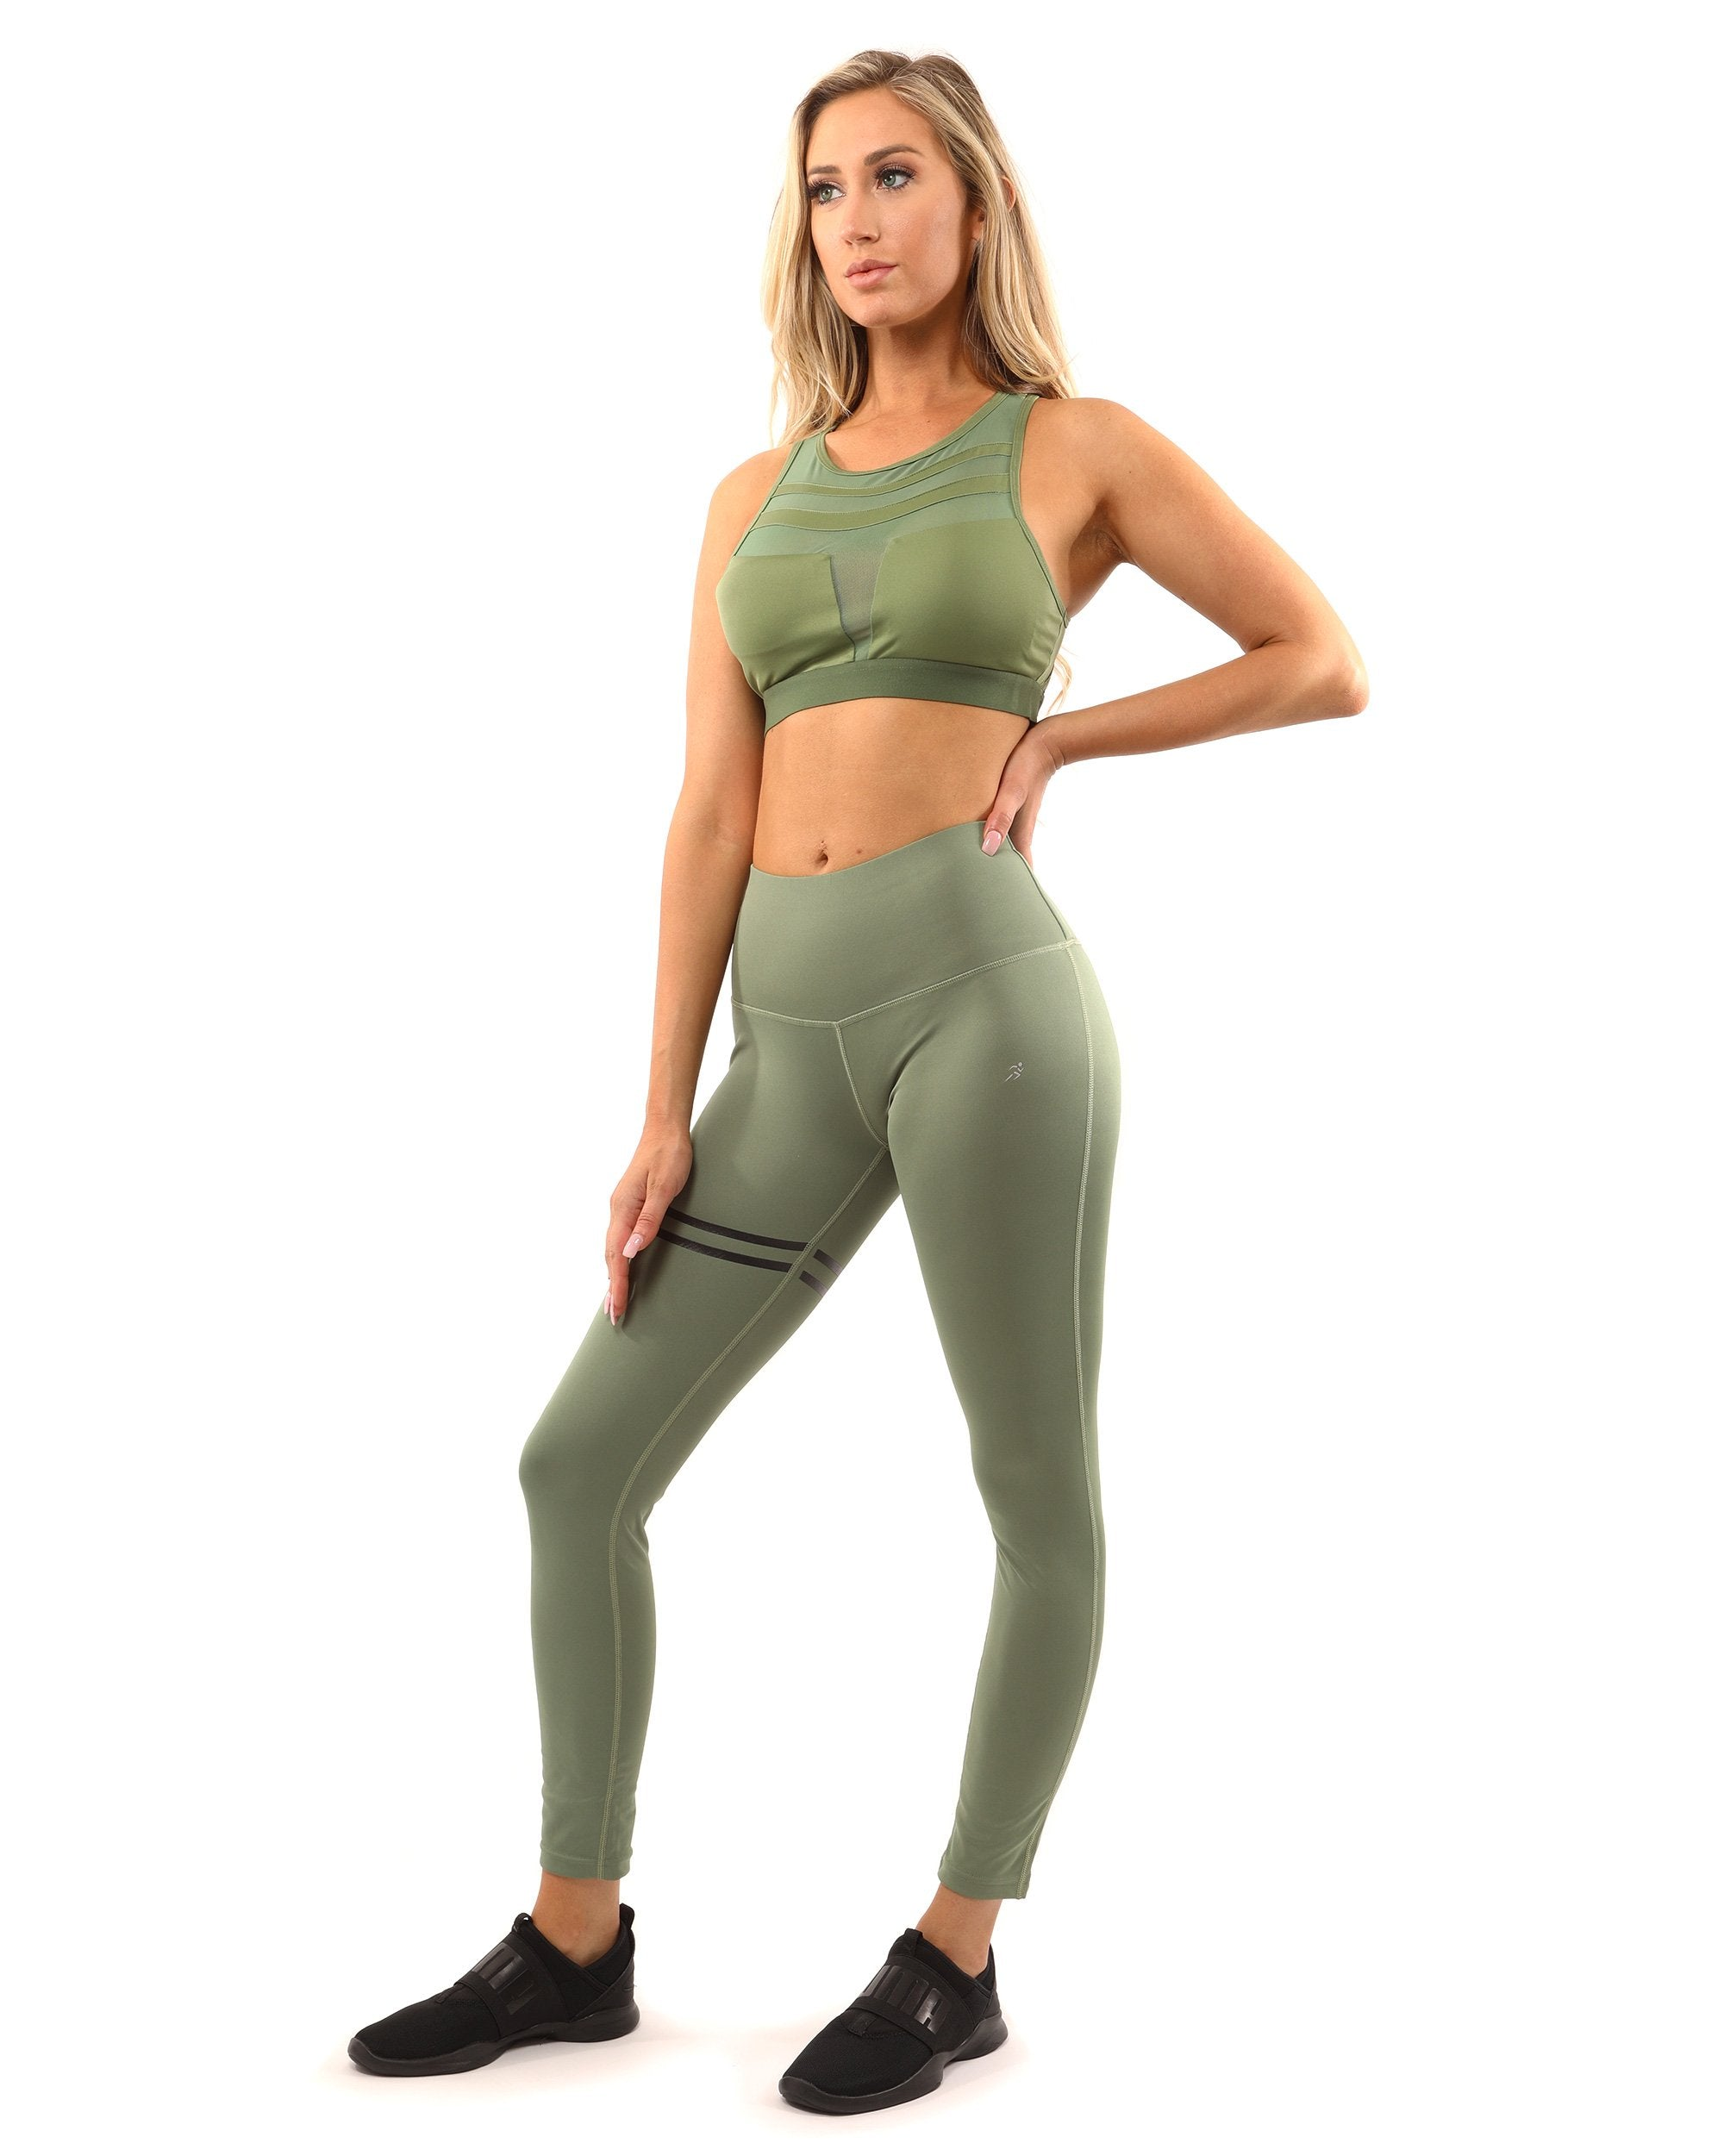 The Athena Set - Leggings & Sports Bra - Olive Green